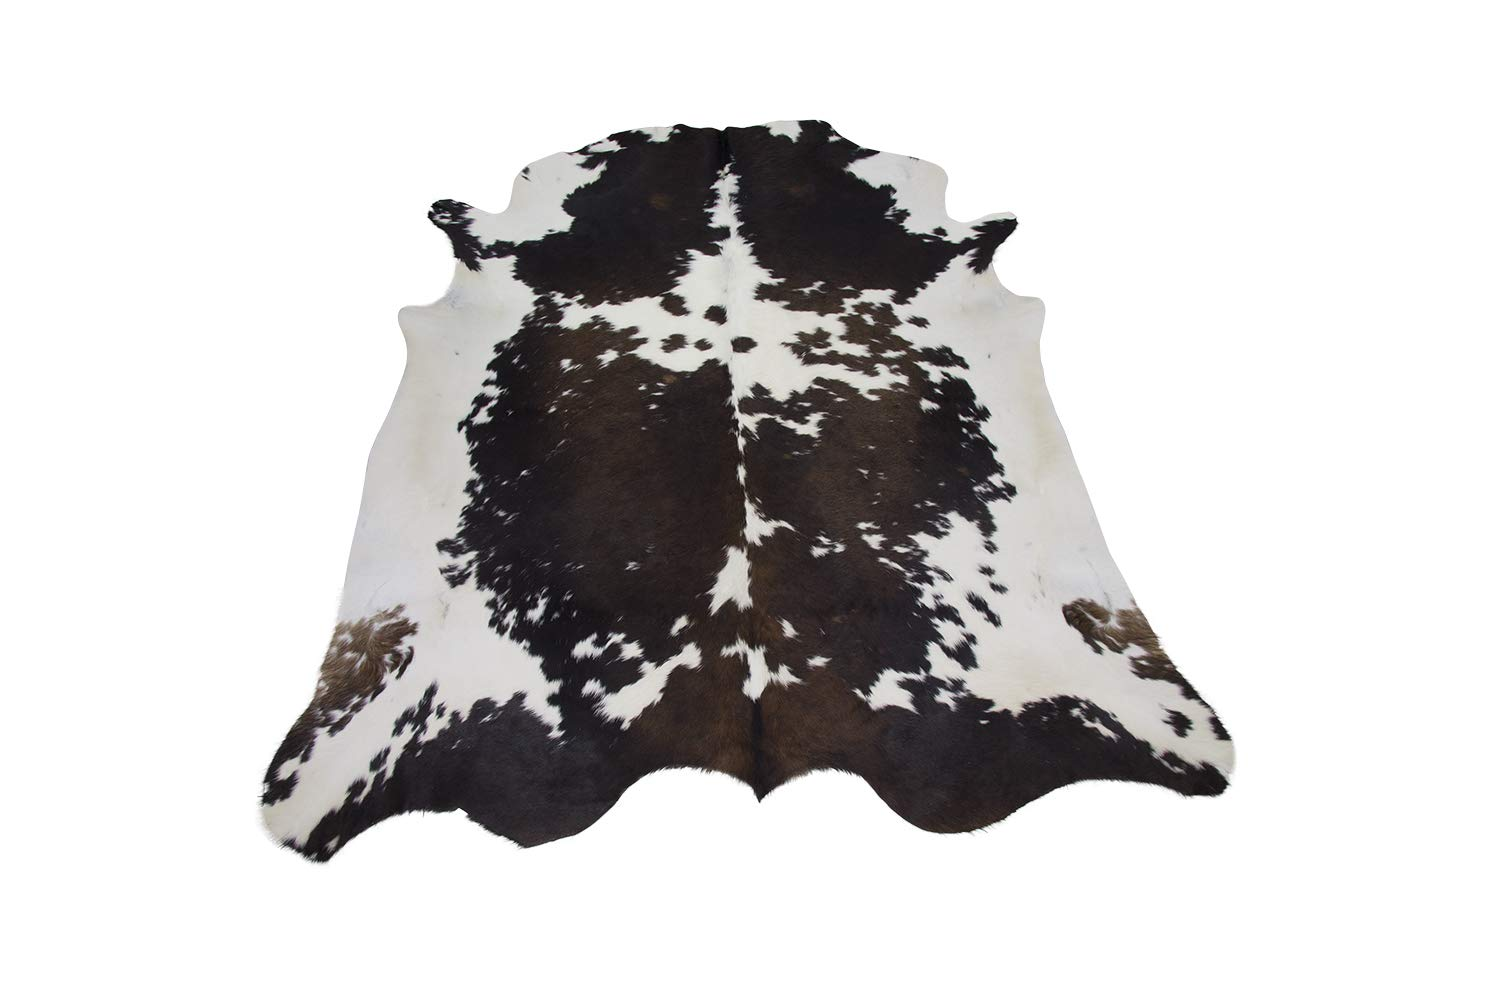 Get The Actual Cow Hide Rug You See no Surprises Artisan Cowhide Area Rugs Authentic Cow Hide Decor Brindle